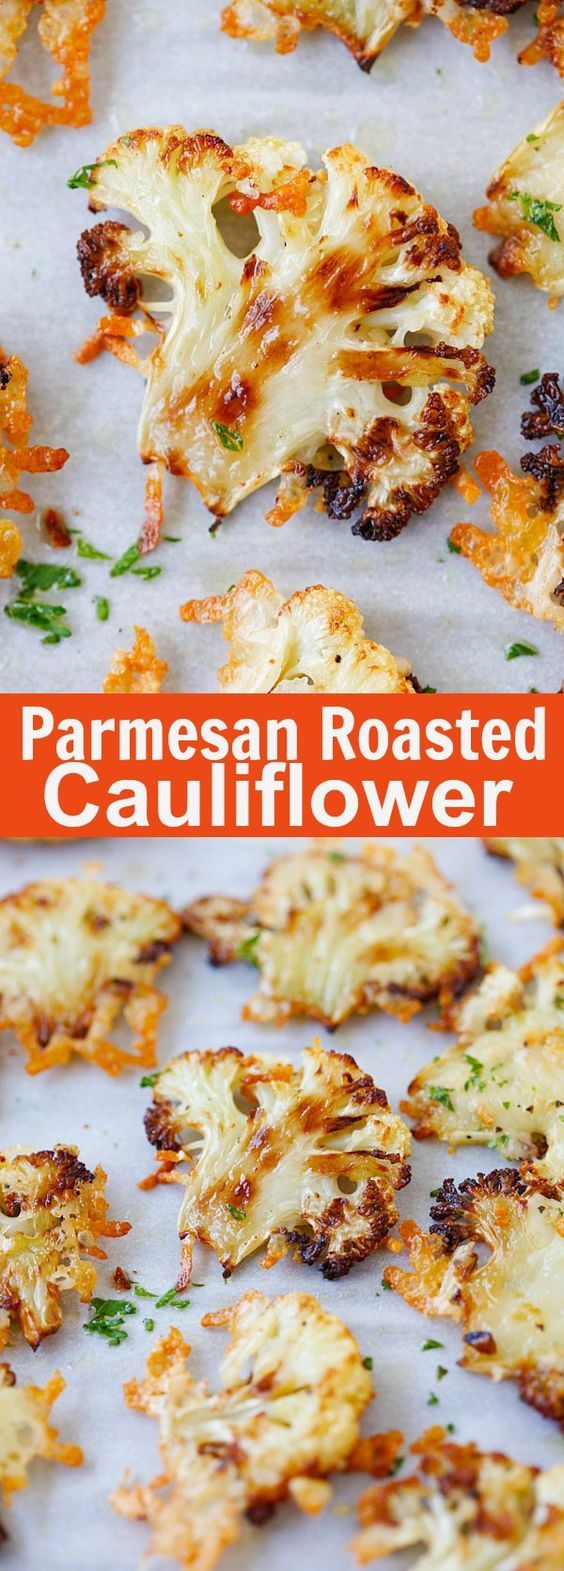 Parmesan Roasted Cauliflower – best cauliflower ever, baked in oven with butter, olive oil and Parmesan cheese. A perfect side dish | rasamalaysia.com